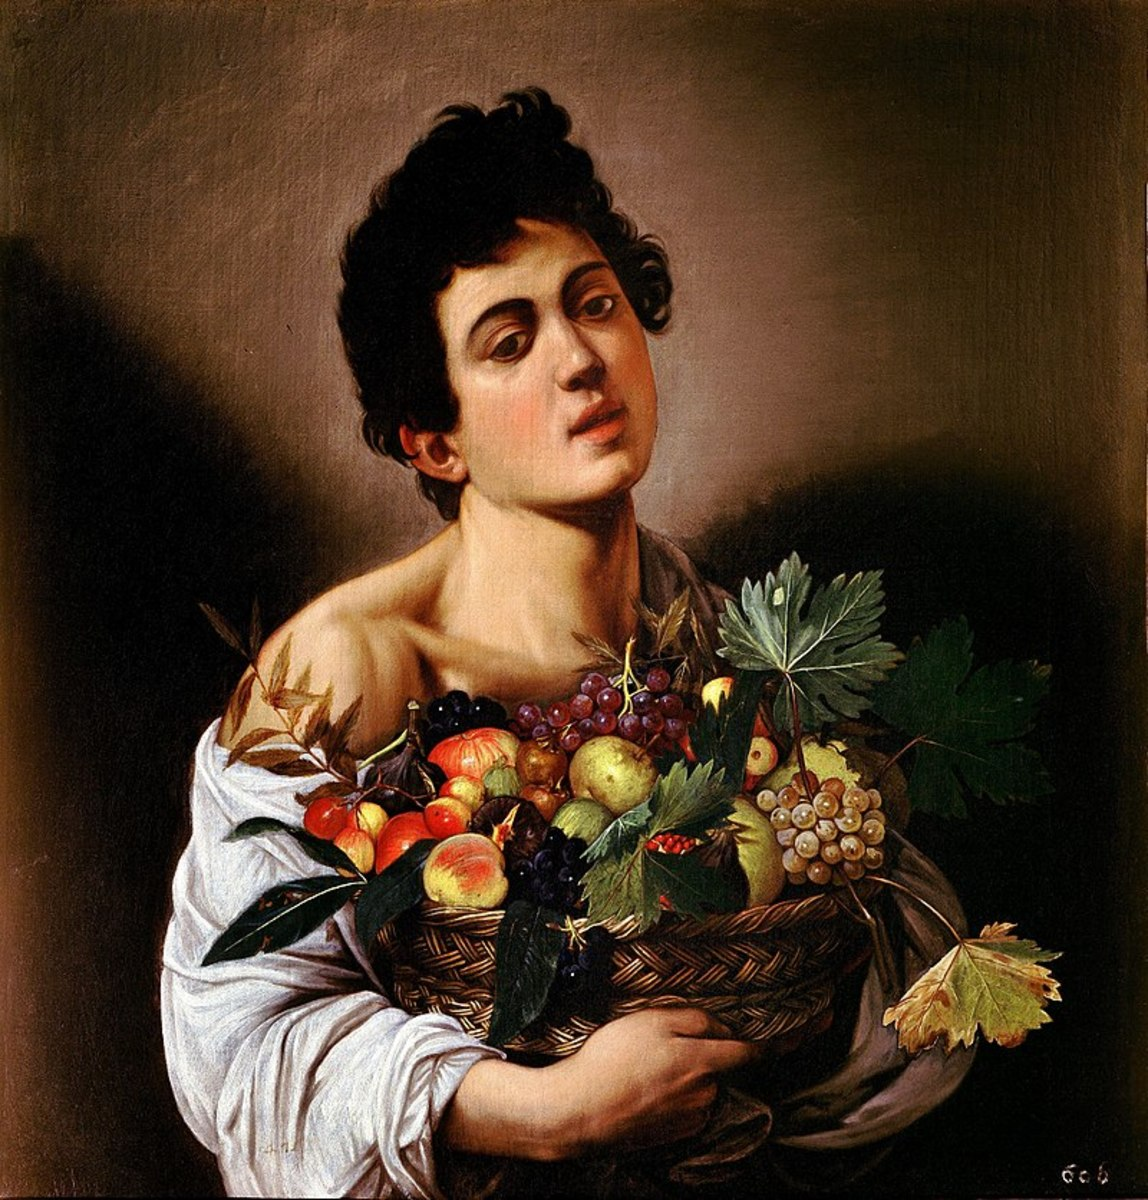 Medlars are seen in the centre of this Caravaggio painting from 1593.